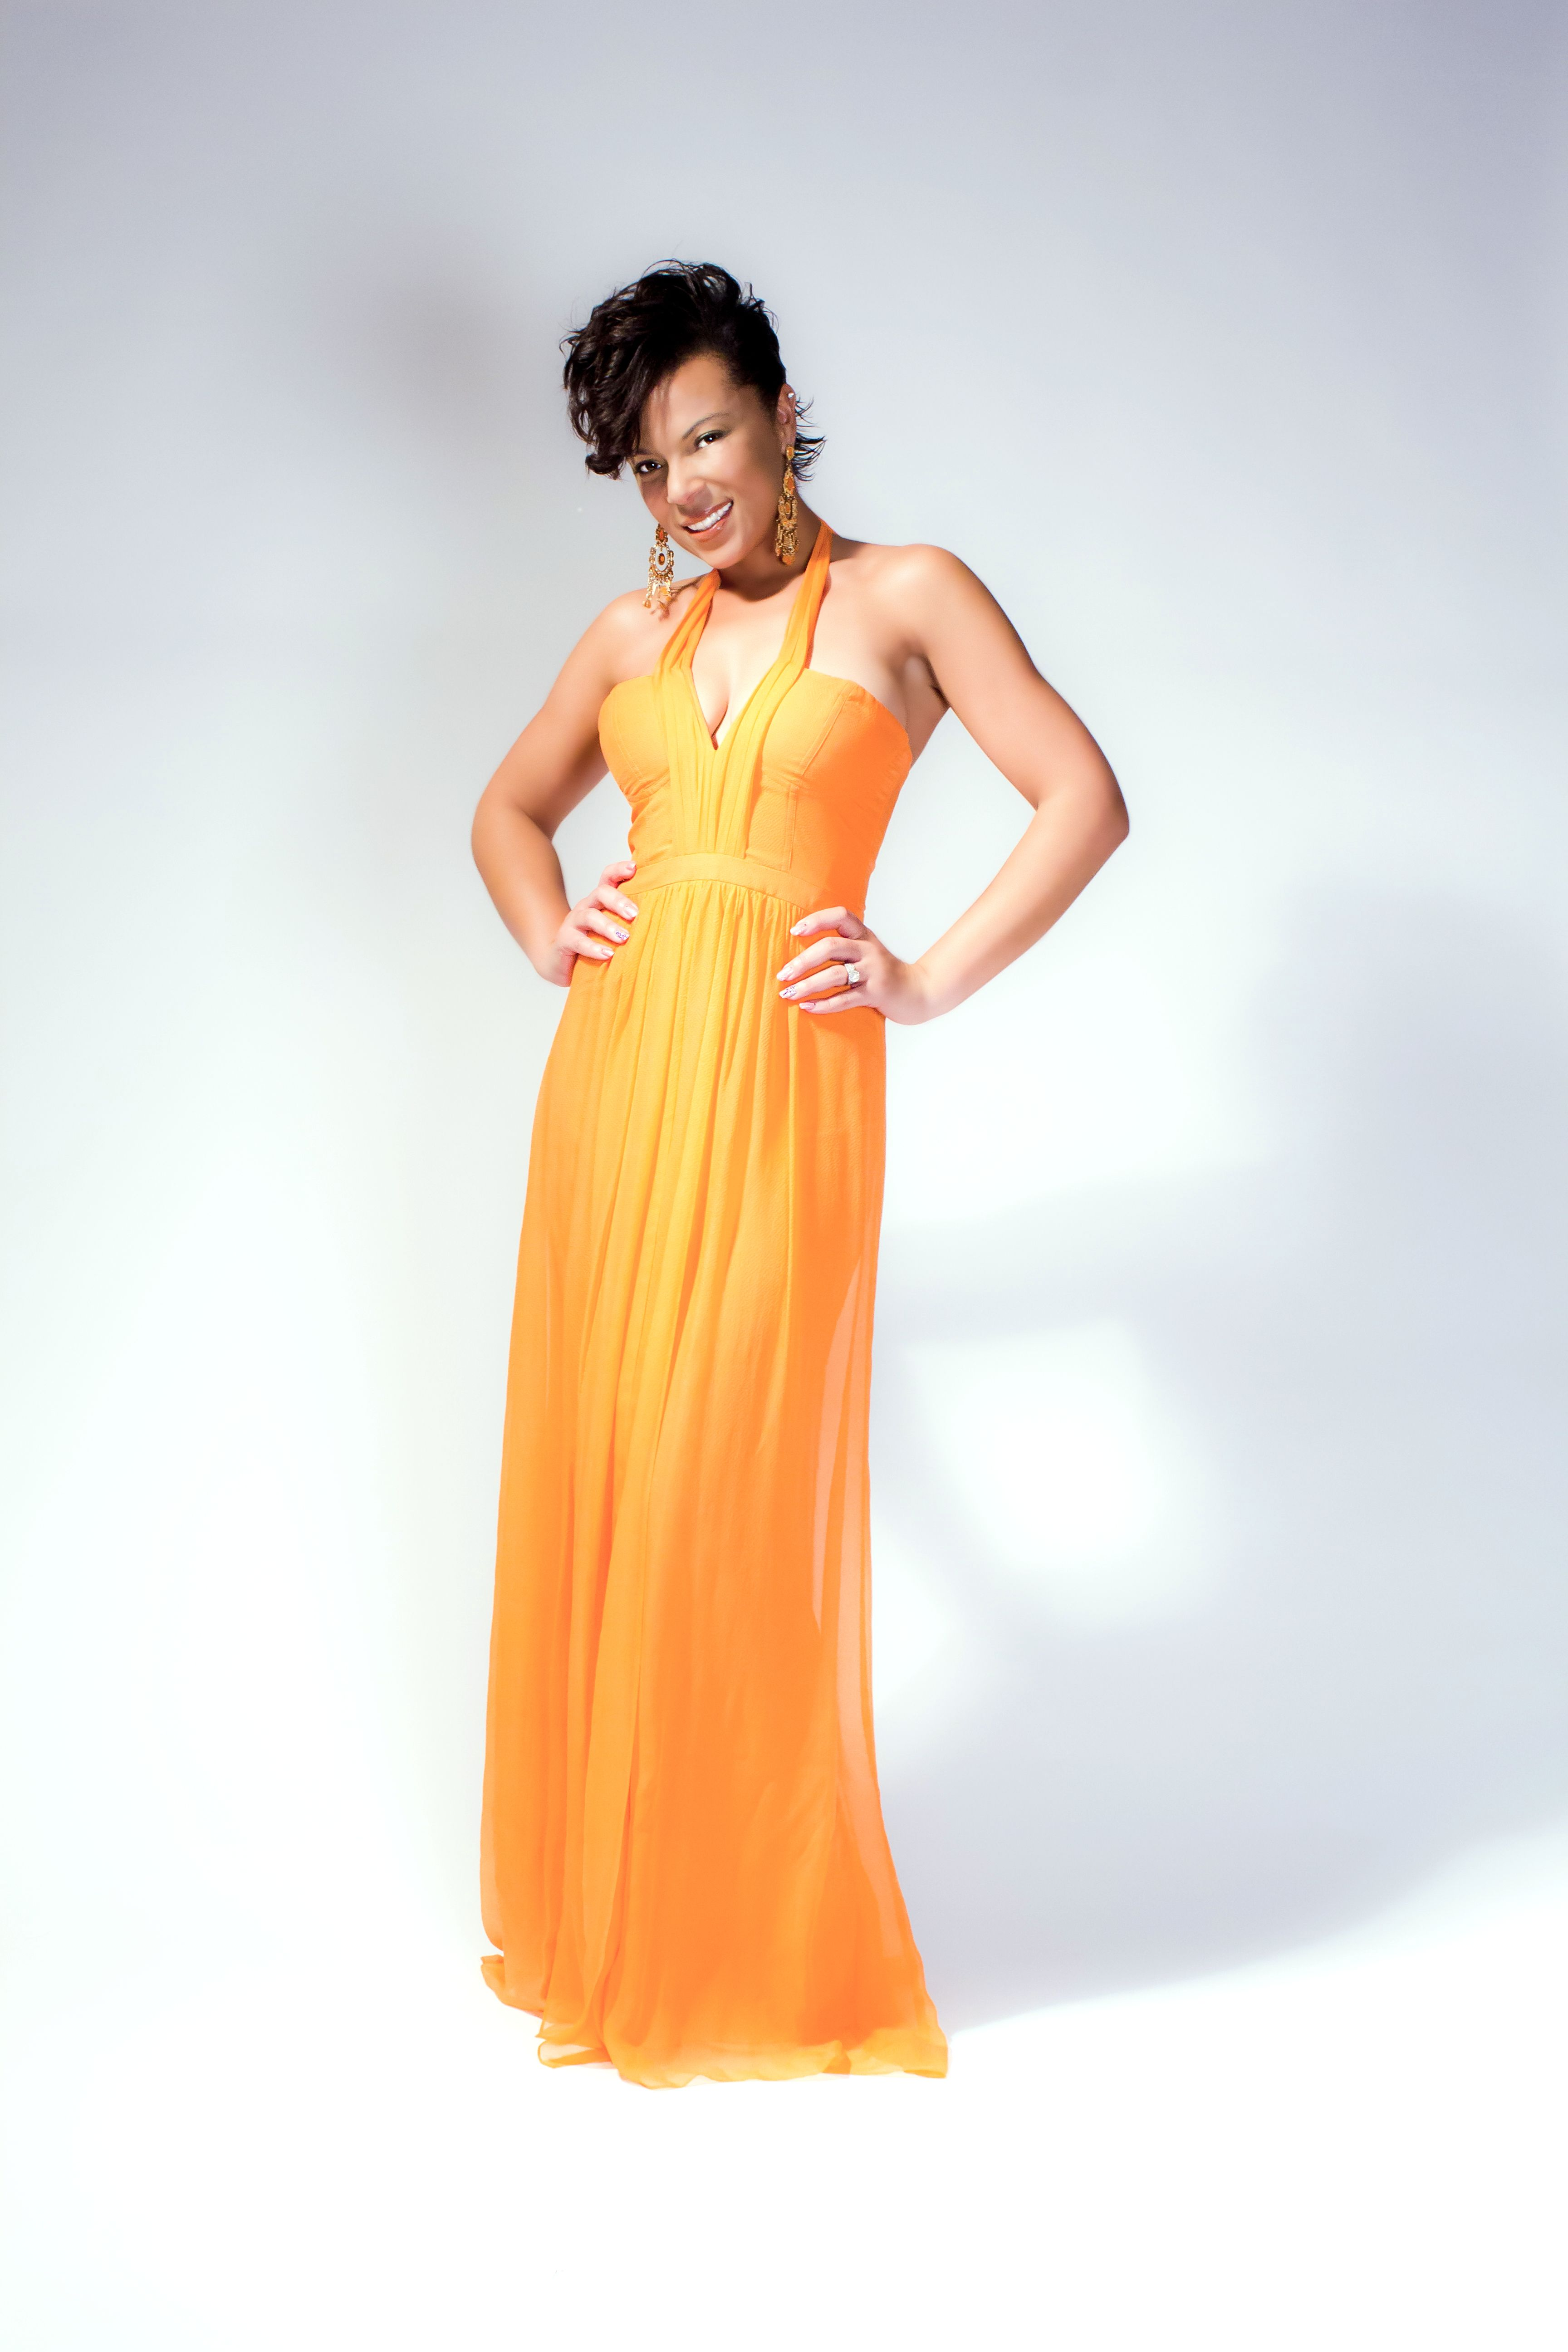 Step into spring with sadiesha wearing a beautiful orange gown by